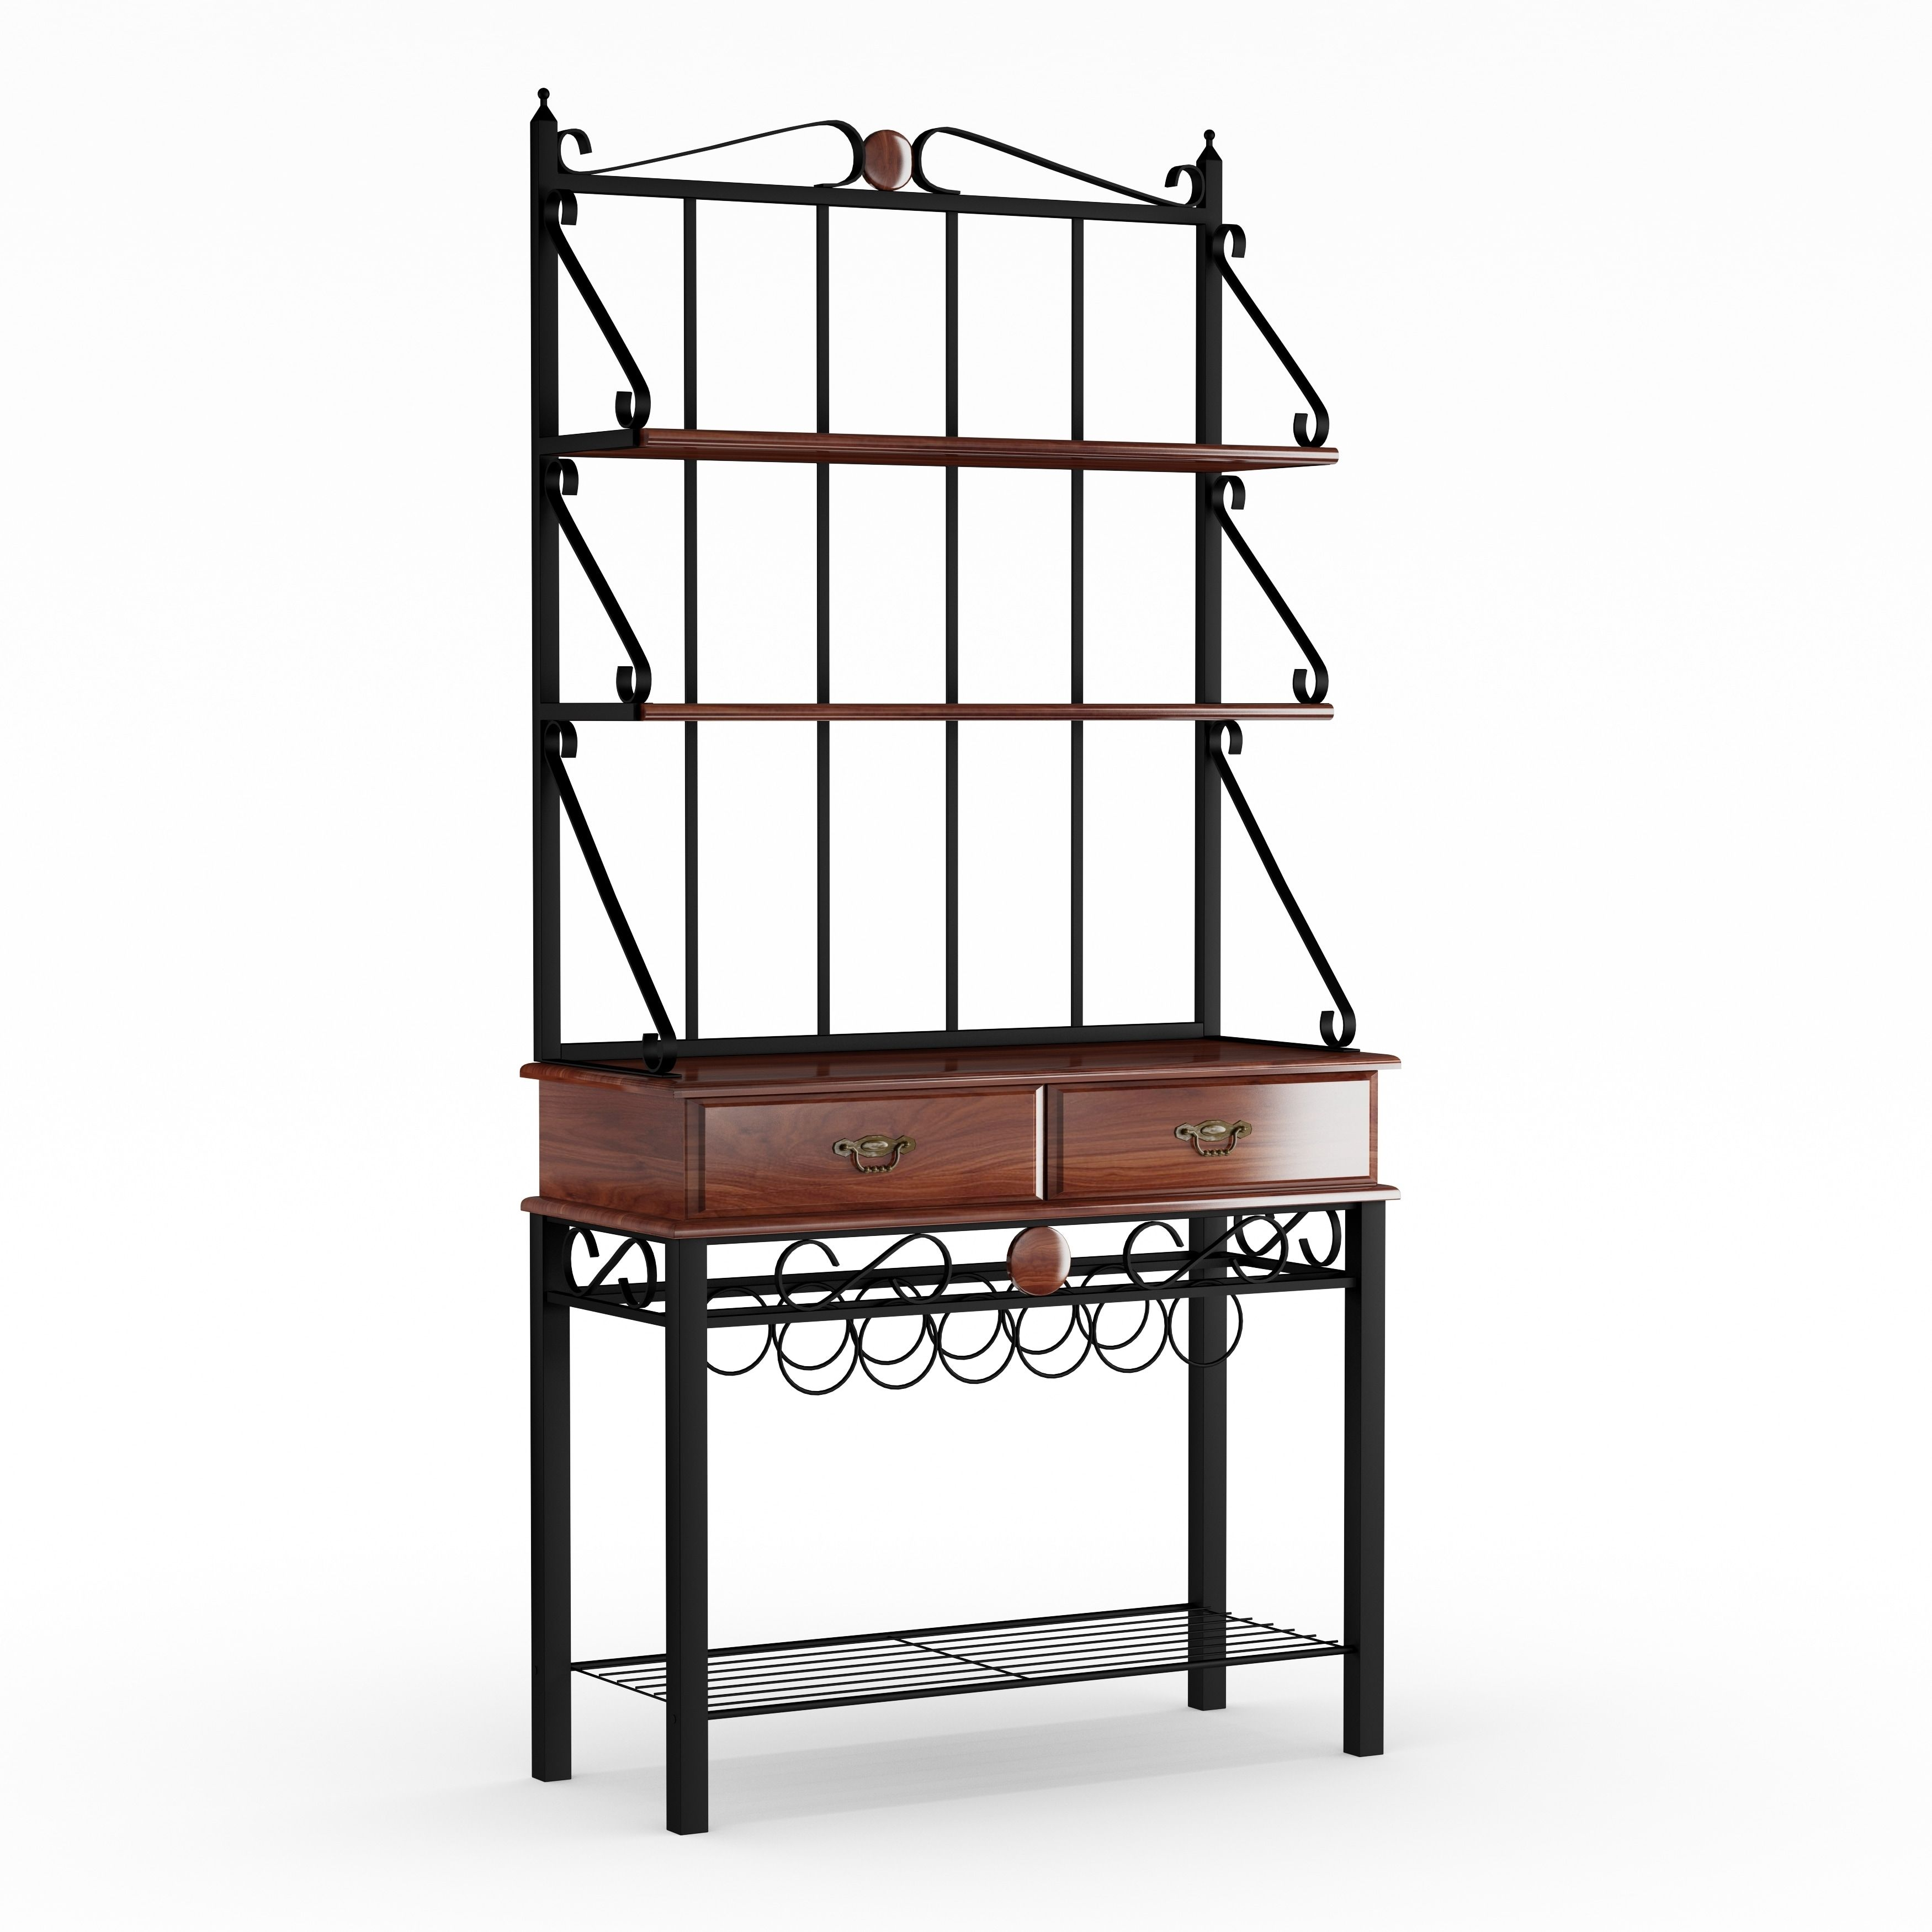 Copper Grove Liscomb Kitchen Cabinet Bakers Rack With 3 Shelves